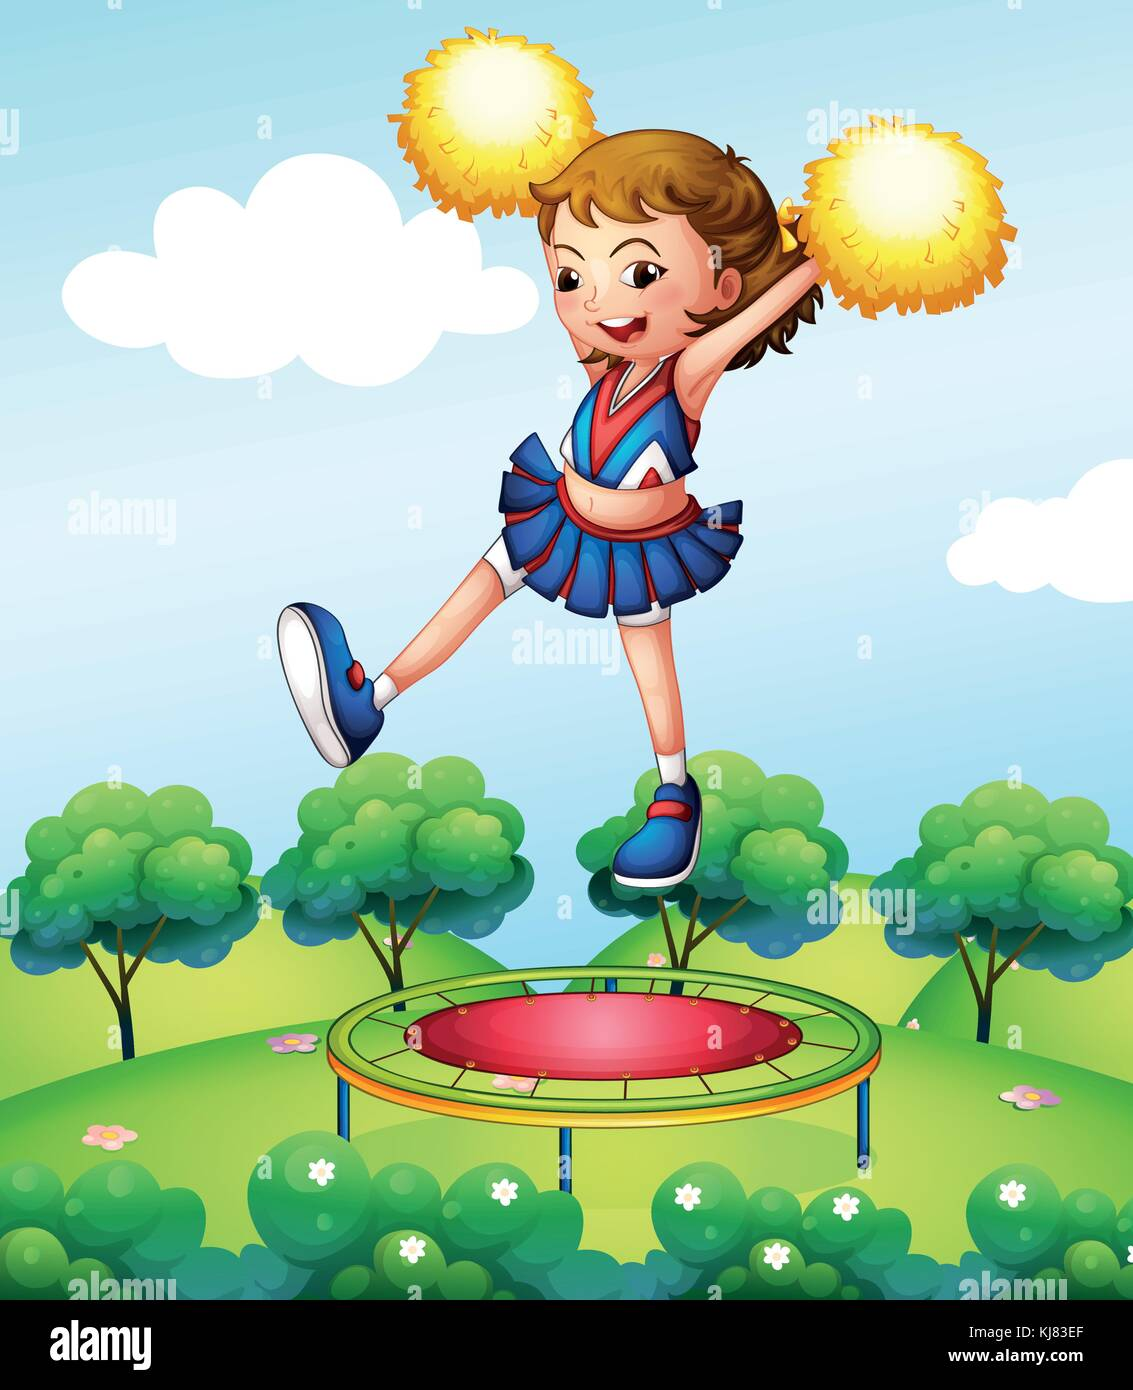 Illustration of a trampoline below a young cheerdancer - Stock Vector